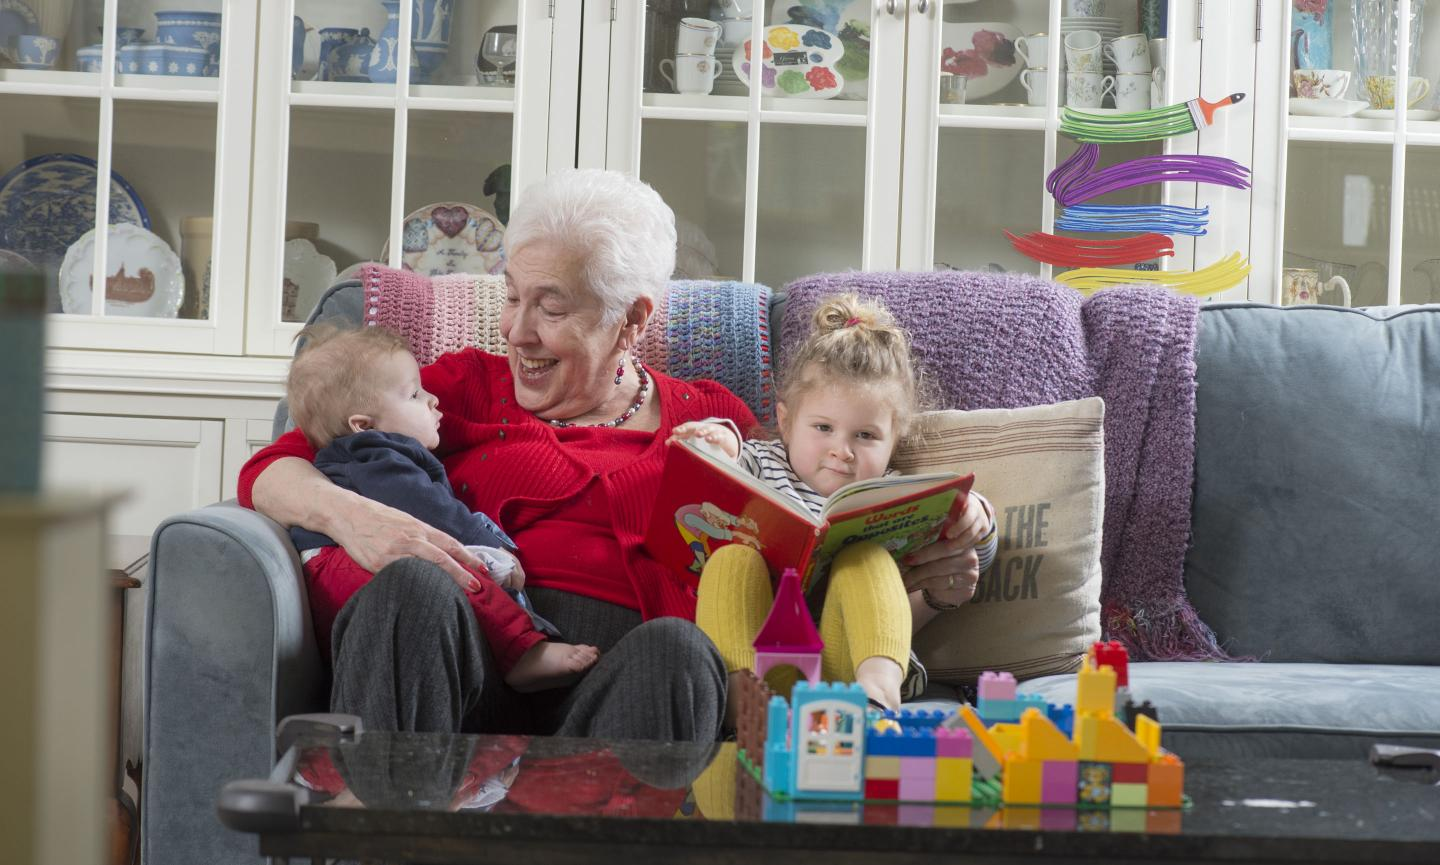 Grandmother in red sweater sits on couch with two grandchildren, a baby under one arm and a toddler with a book under the other. Brightly-colored blocks sit on a coffee table.